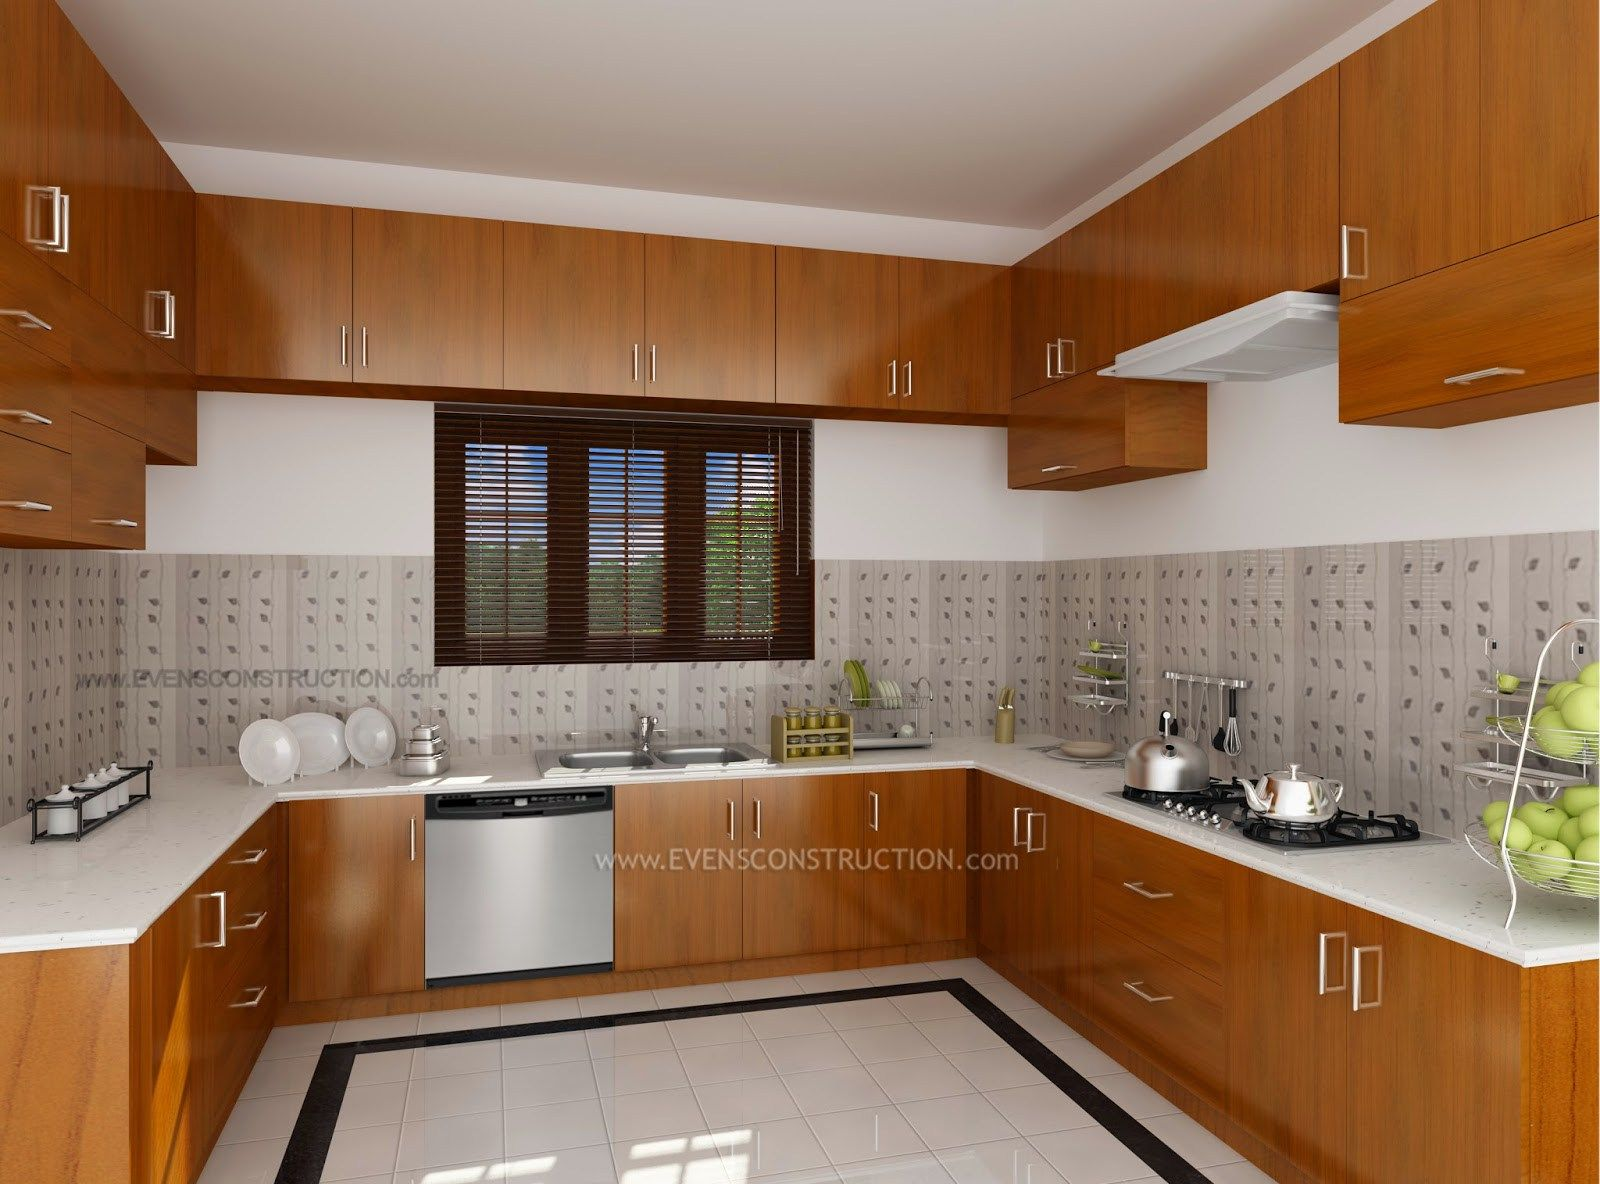 Design interior kitchen home kerala modern house kitchen for Home decor ideas for kitchen